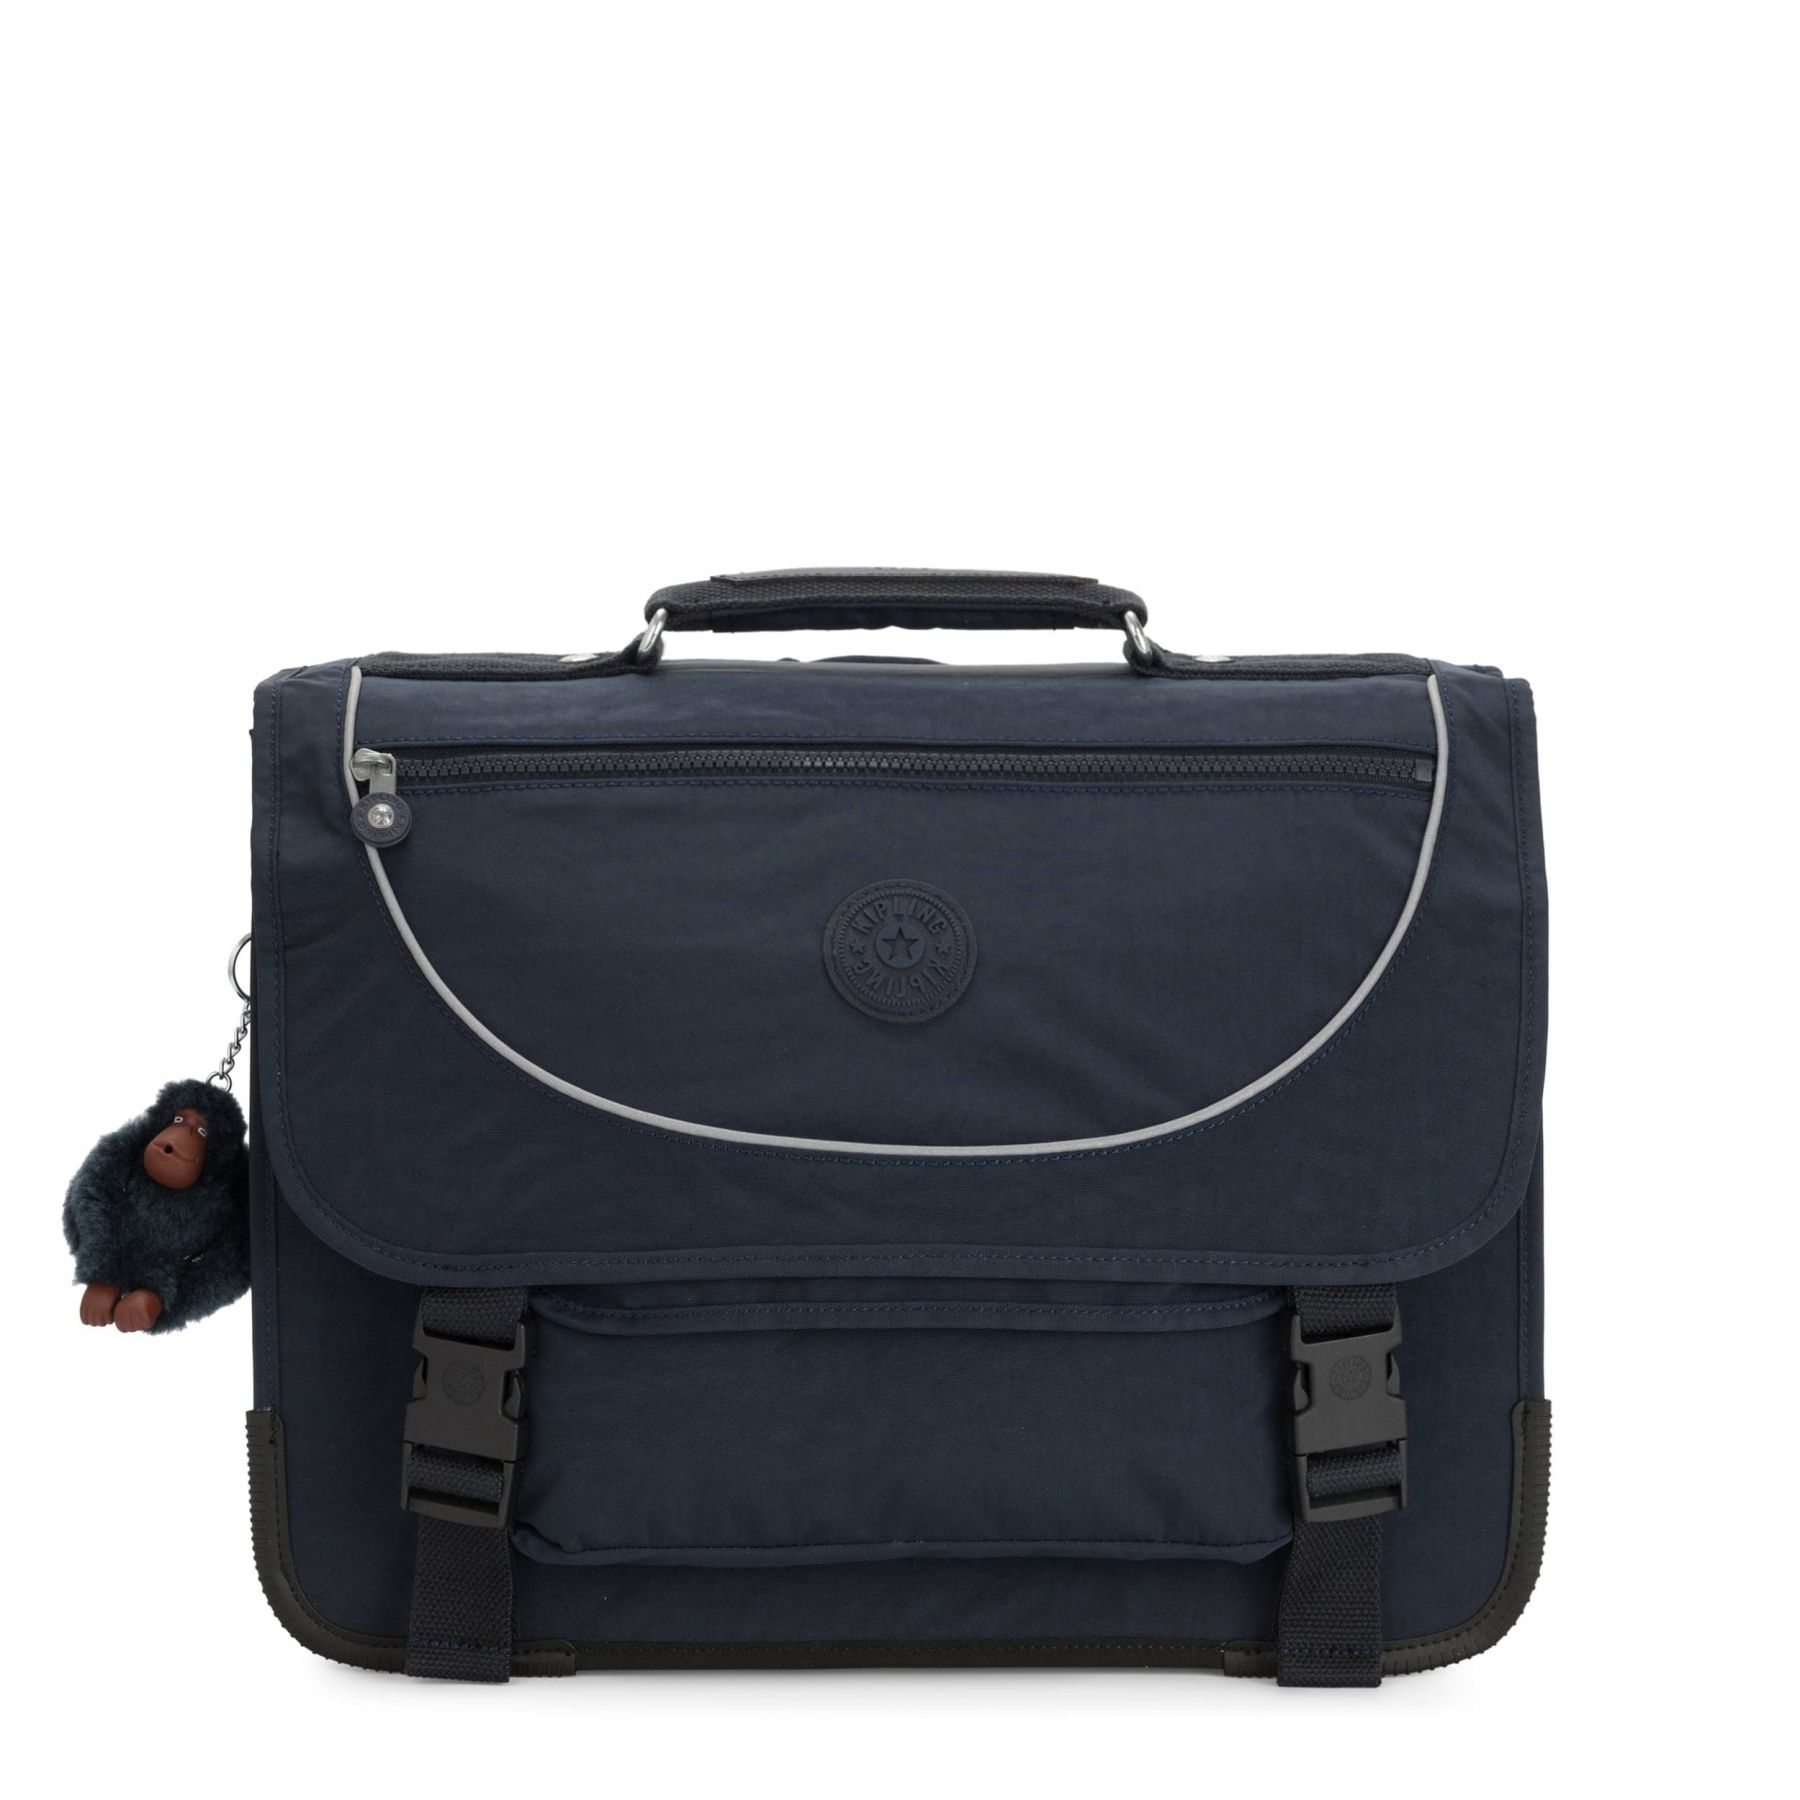 PREPPY Latest Backpacks by Kipling - Front view